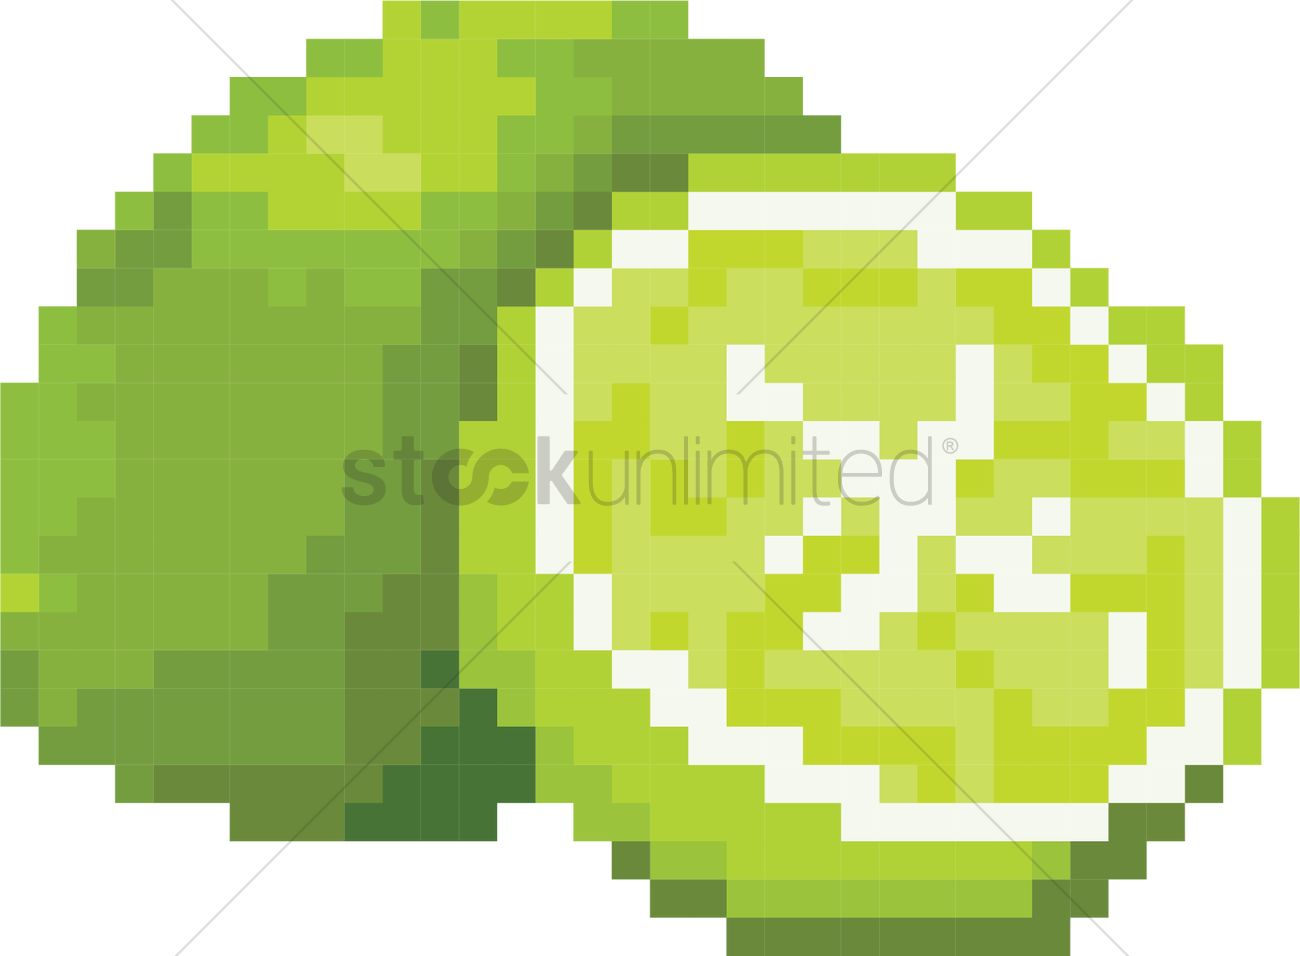 Lime pixel art Vector Image - 2021164   StockUnlimited